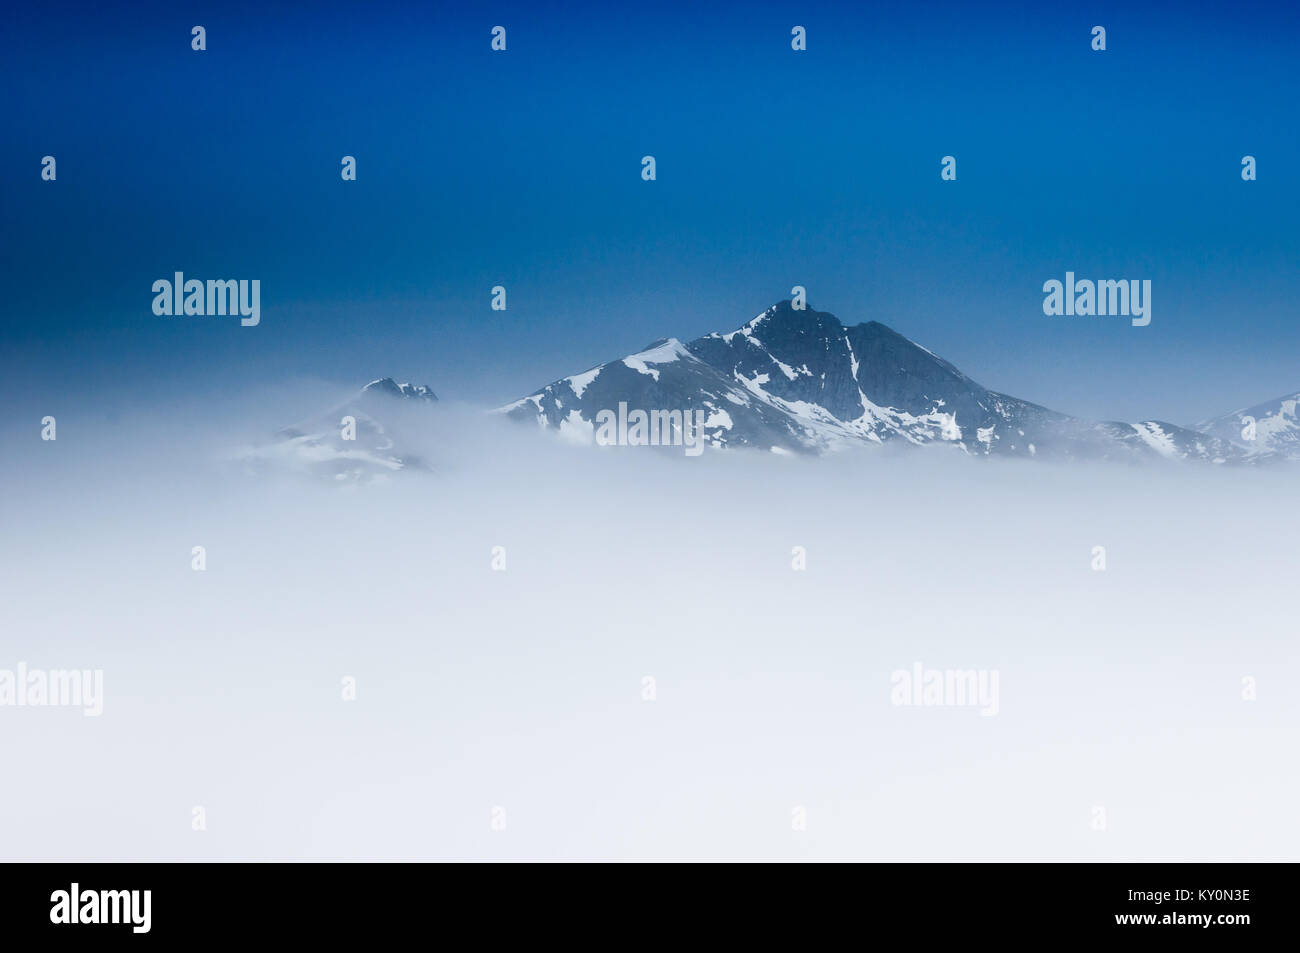 The Scottish mountain Ciste Dubh (The Black Coffin) rearing up impressively through a cloud inversion at the end - Stock Image